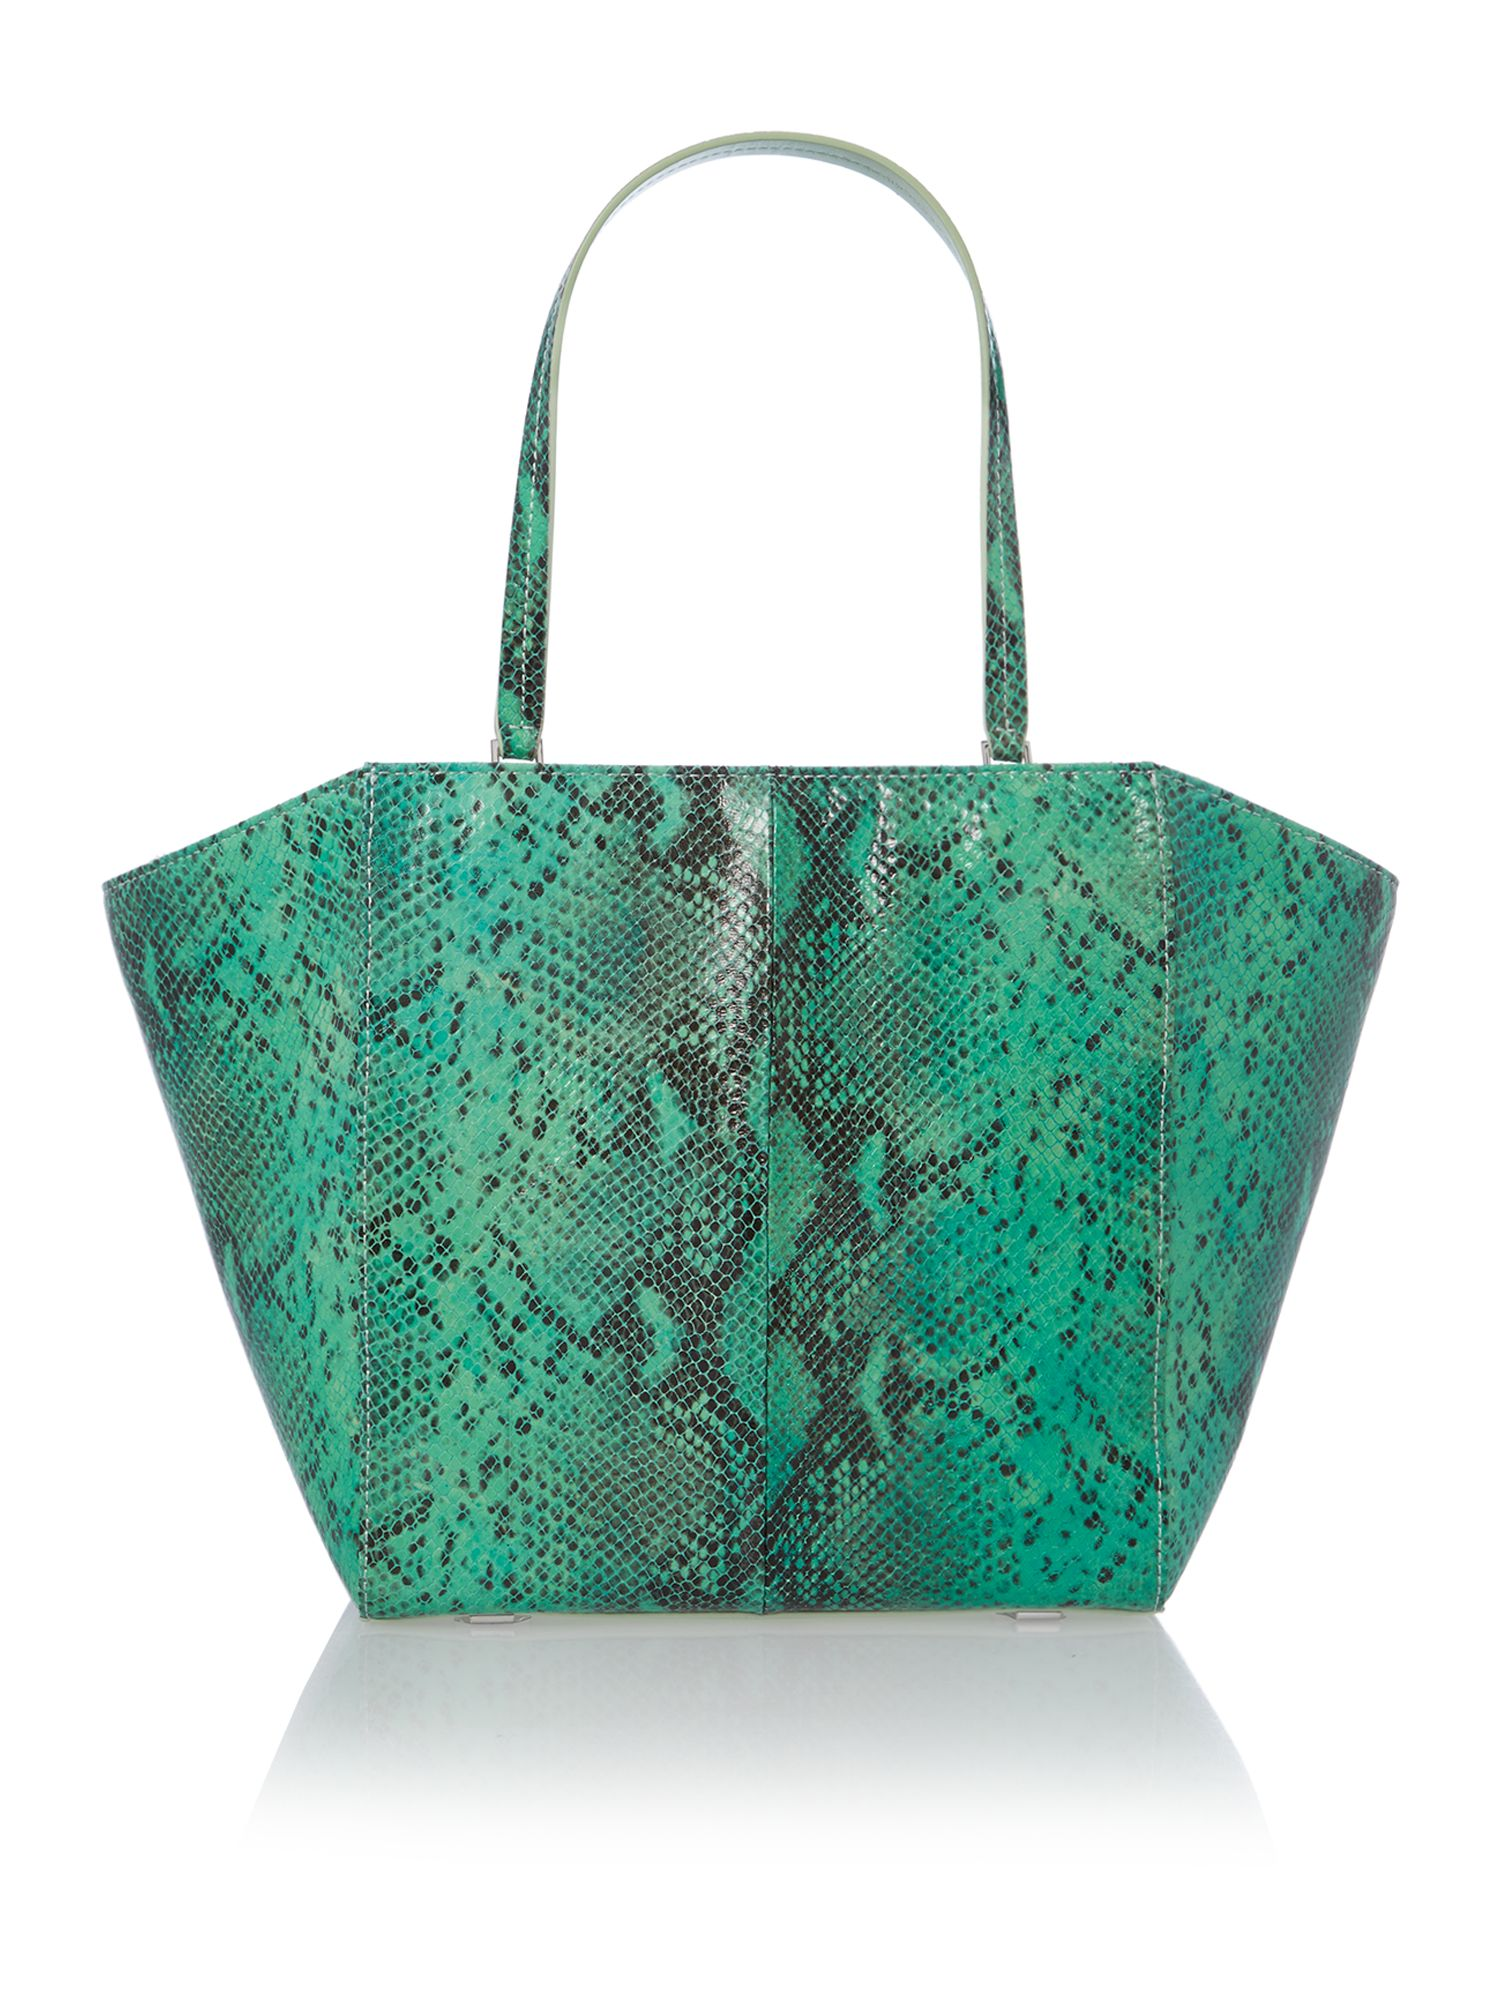 Medium green snakeskin cross body bag